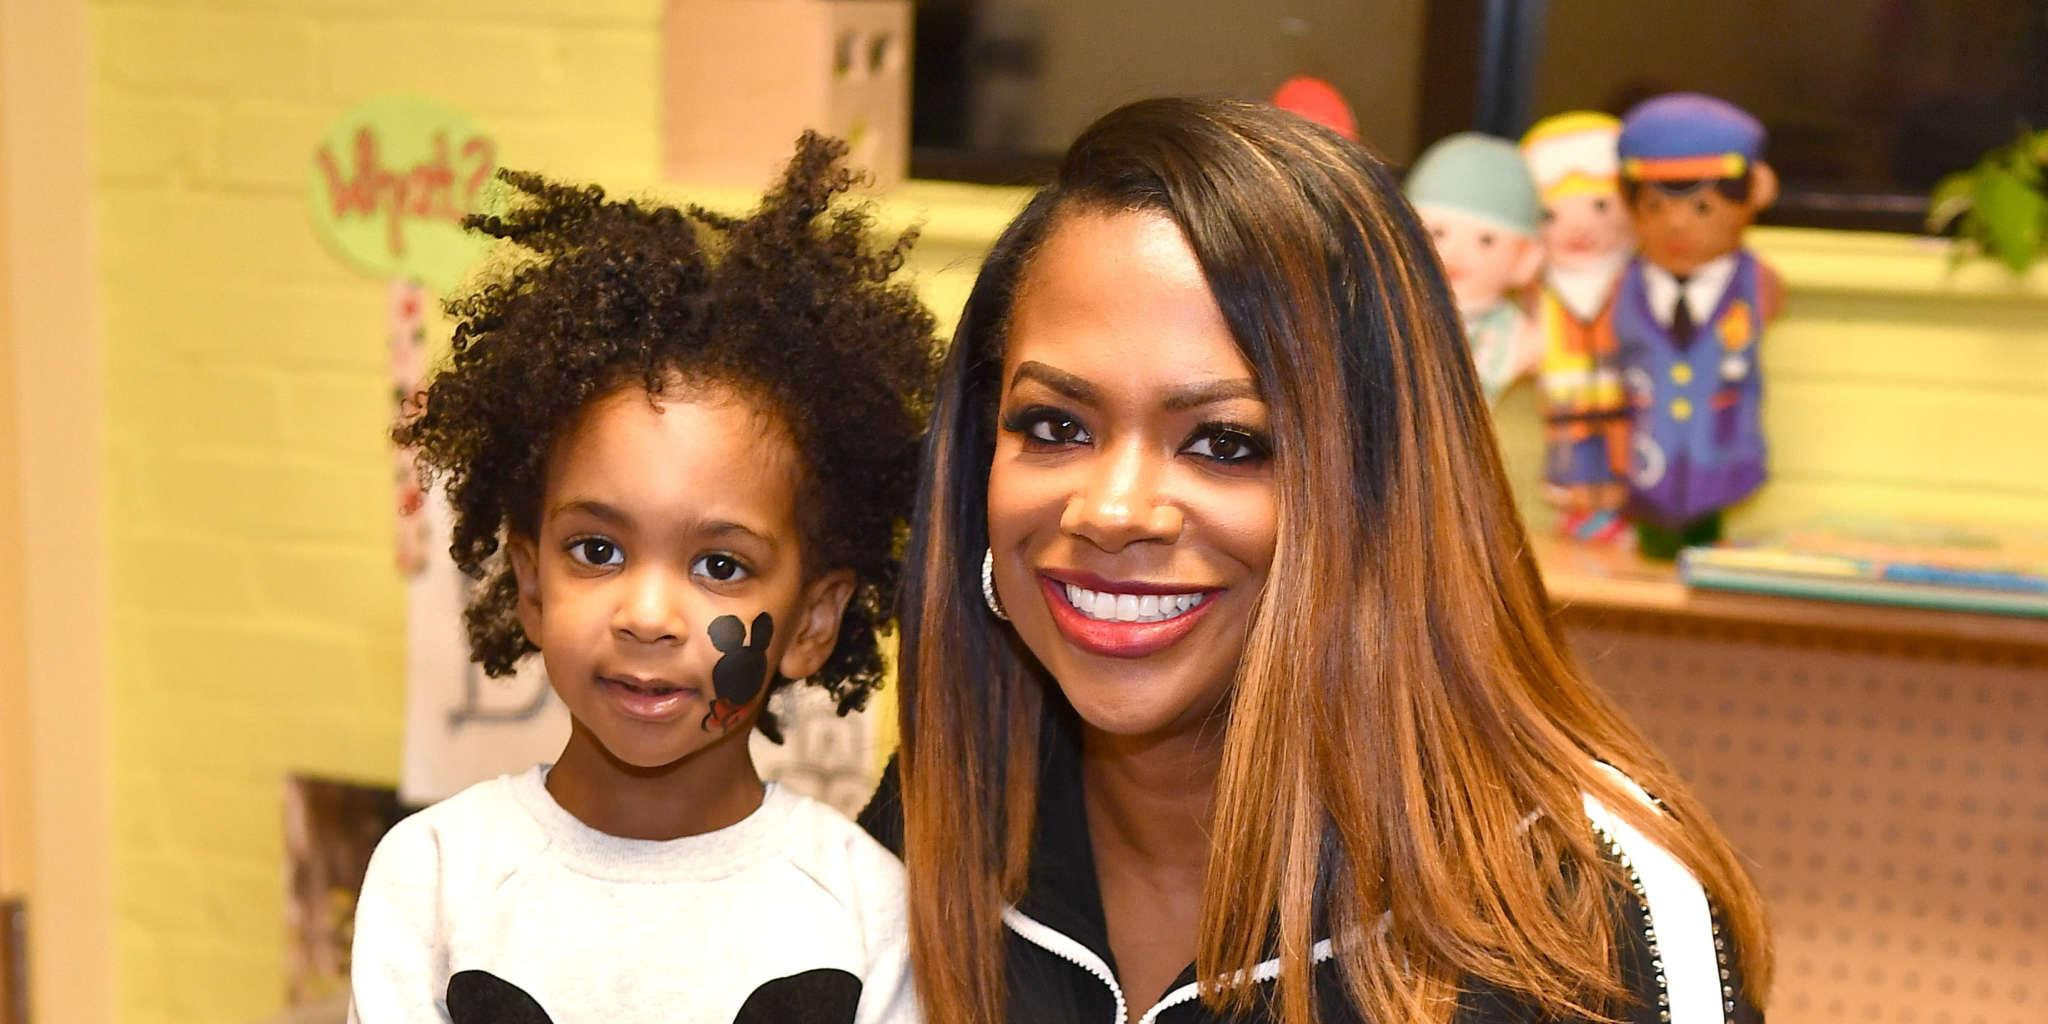 Kandi Burruss Gushes Over Ace Wells Tucker's Two Costumes For Halloween - Check Out The Sweet Pics